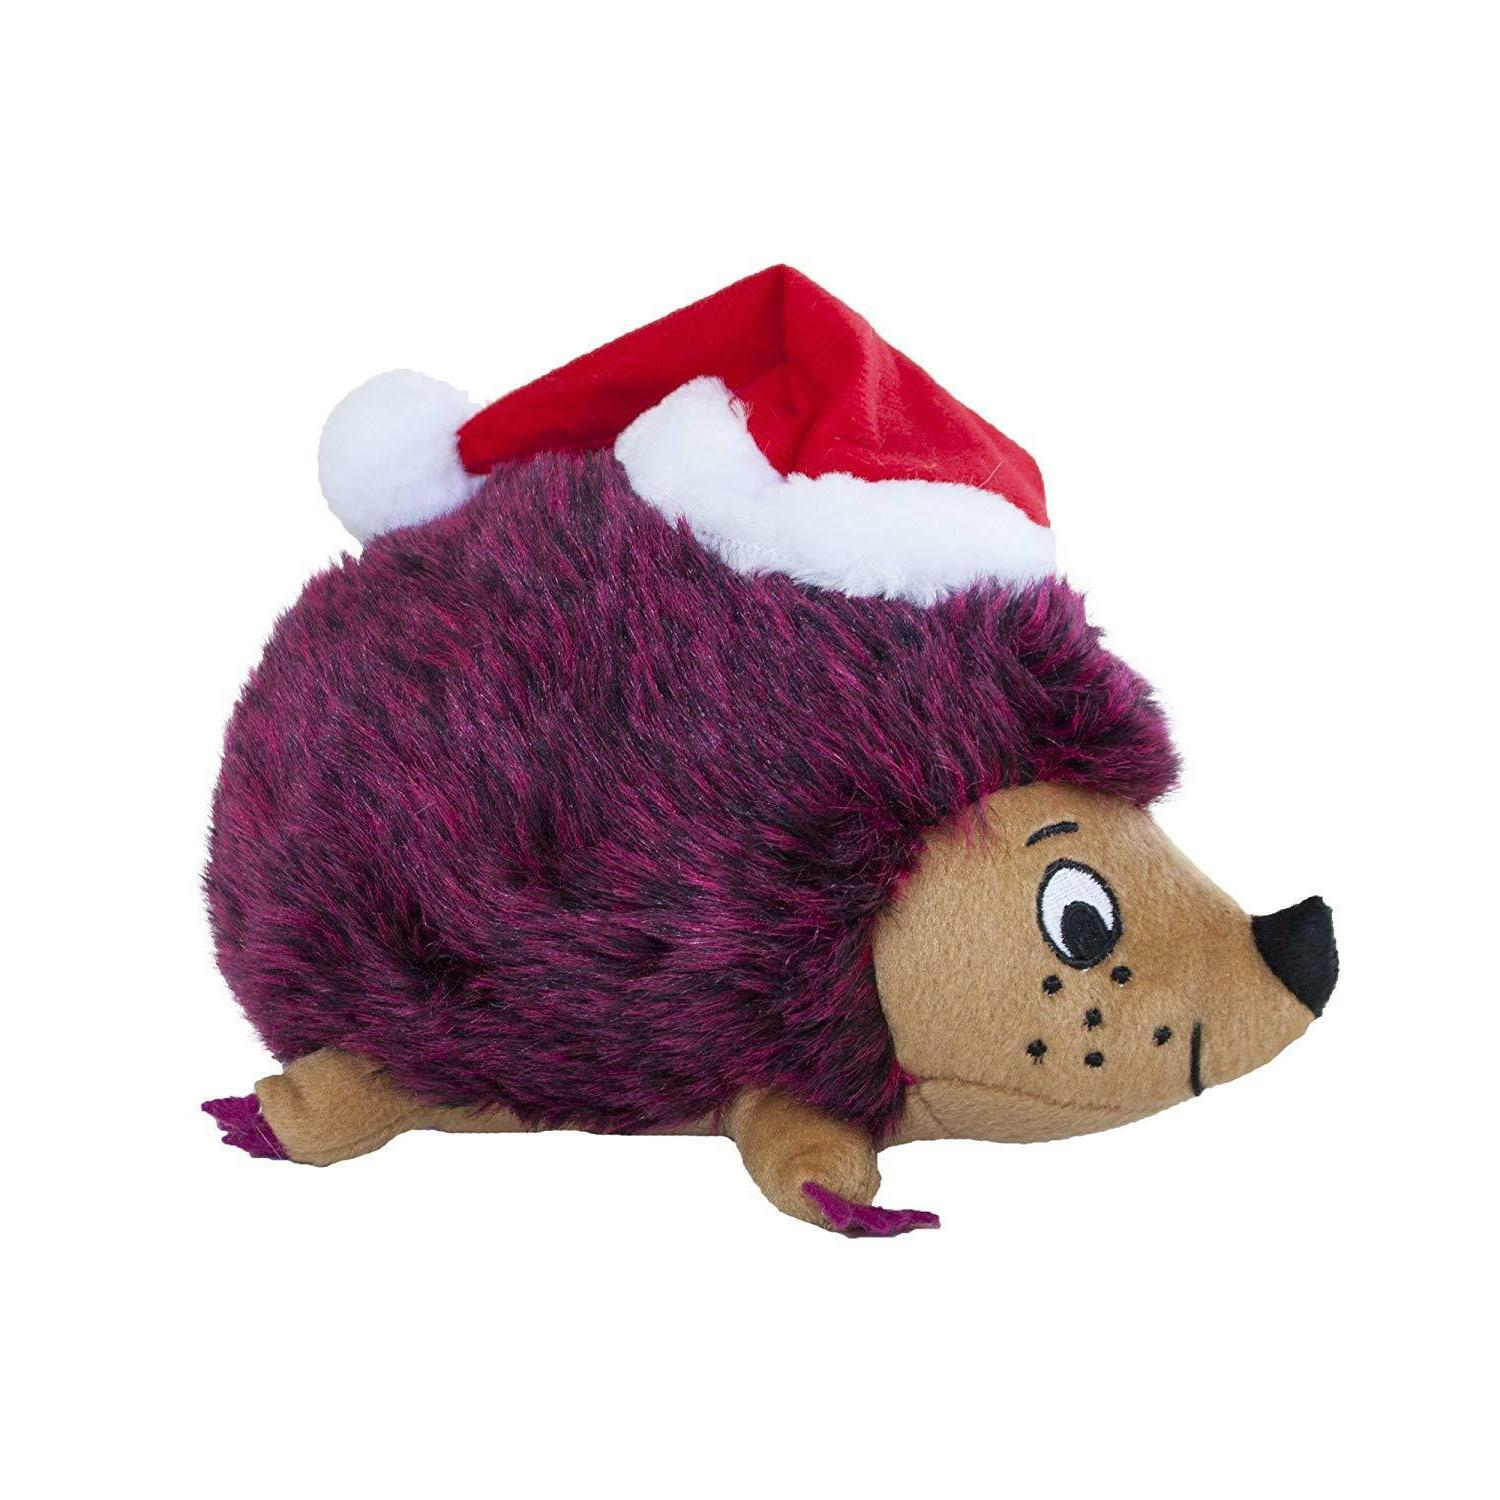 Dog Christmas Santa Hedgehog Outward Hound Pet Holiday Durable Squeaker